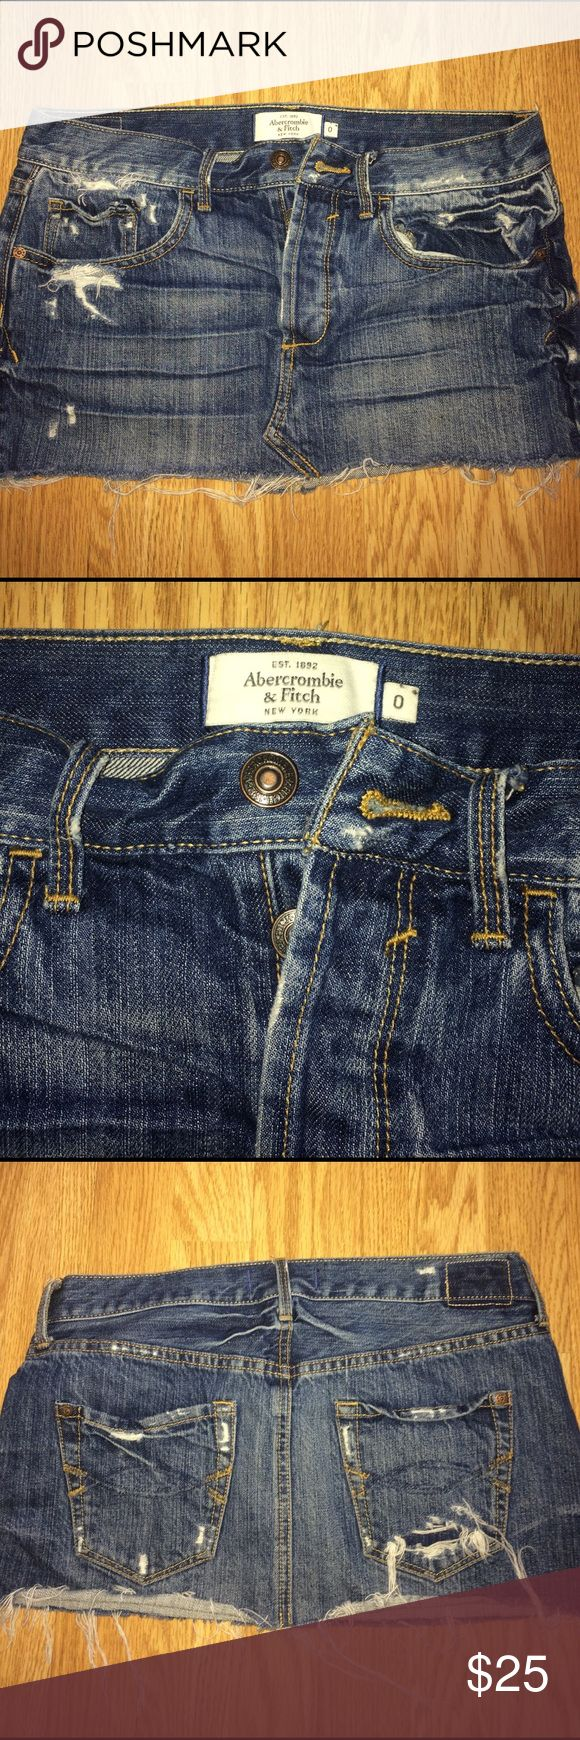 Skirt Abercrombie & Fitch jean skirt Abercrombie & Fitch Skirts